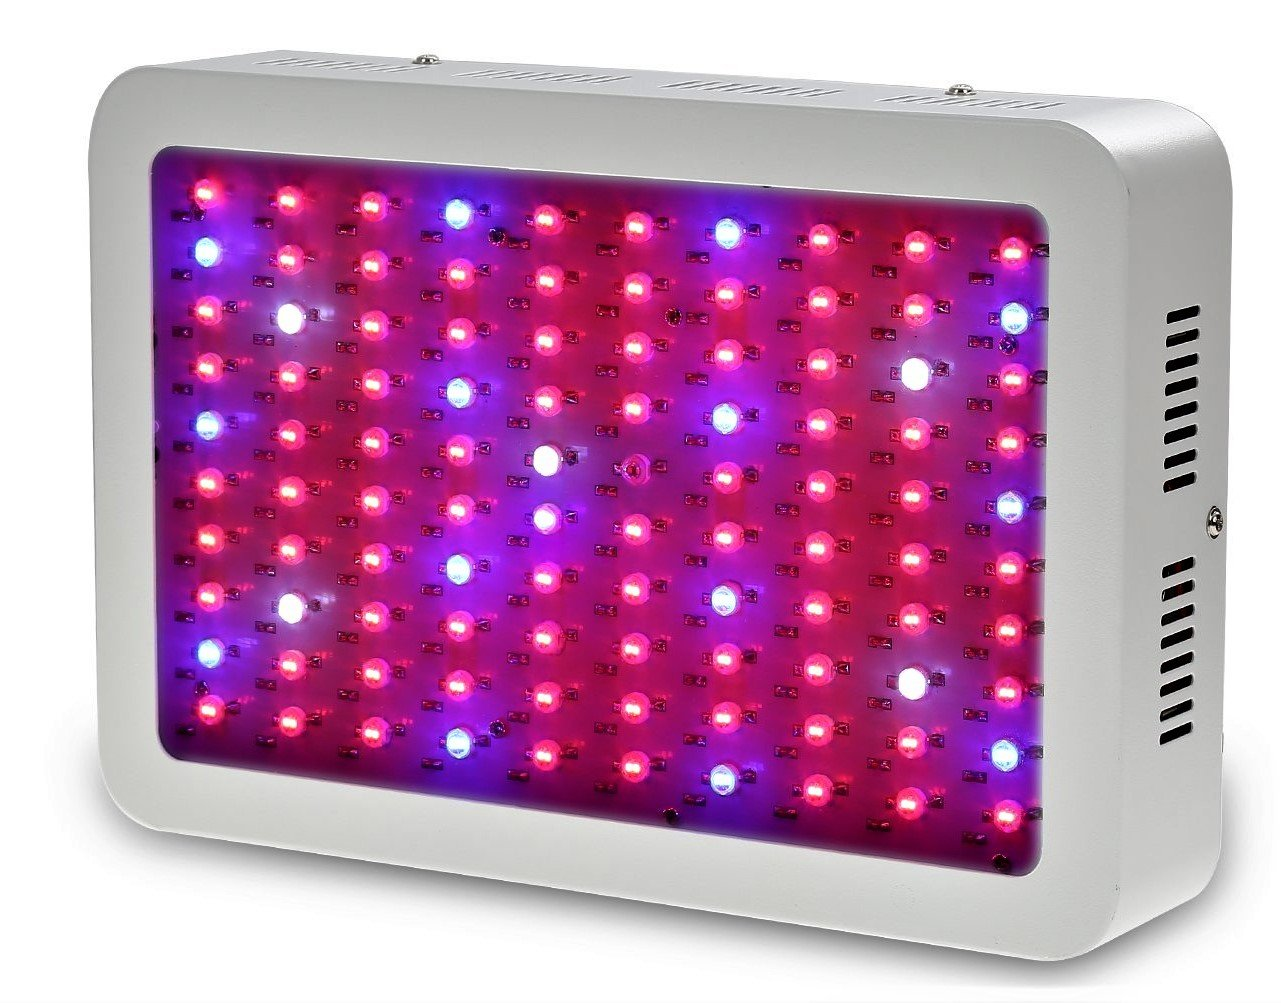 H World EU 1000W Double Chips Super Bright Full Spectrum Plant Grow Lights for Indoor Garden Hydroponic Greenhouse Flower